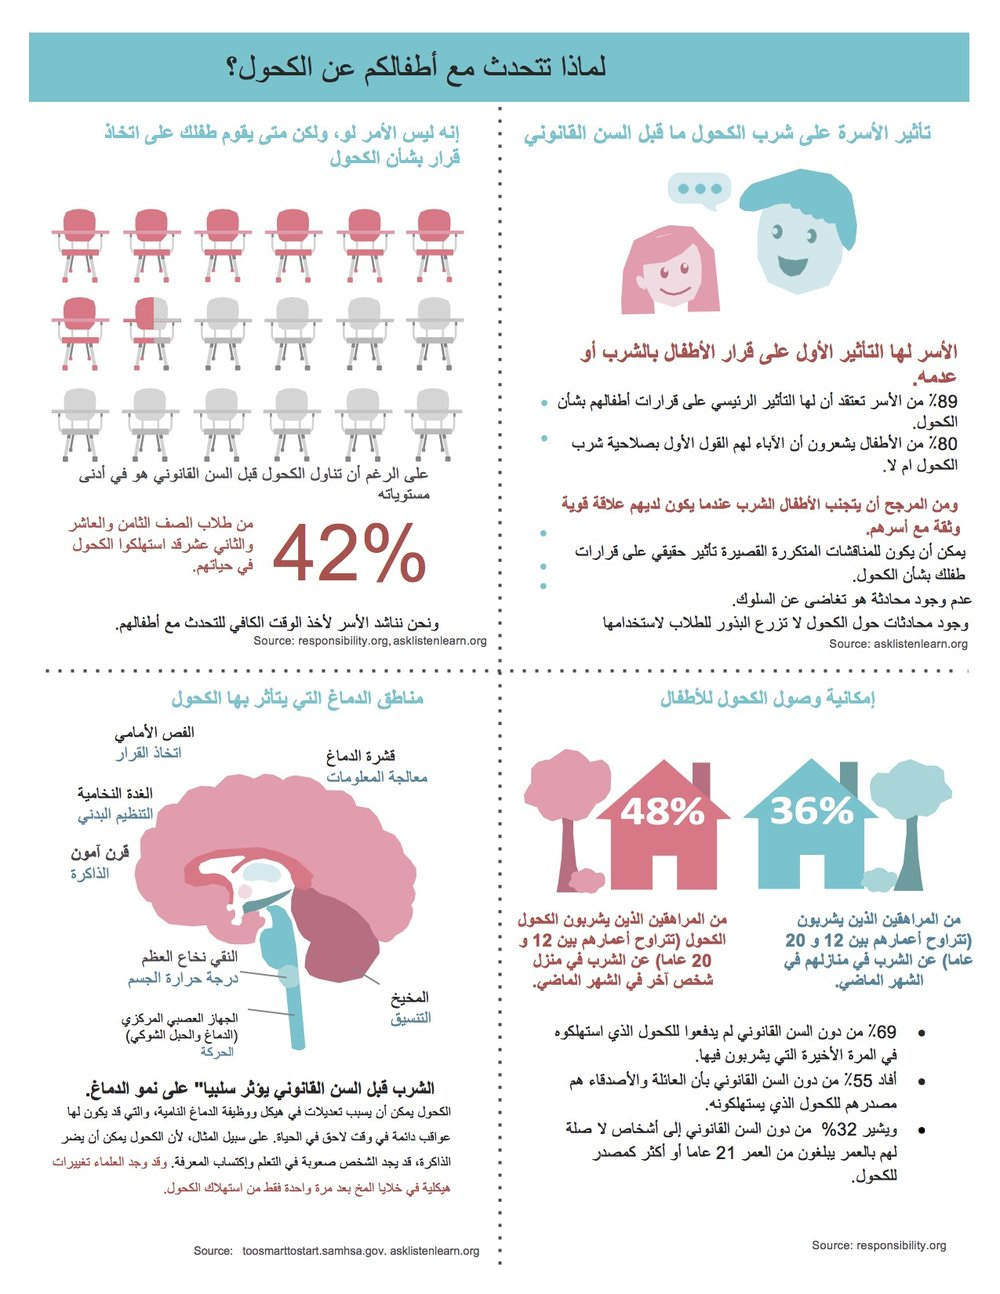 Alcohol Why Fact Sheet No Outline_Arabic.jpg